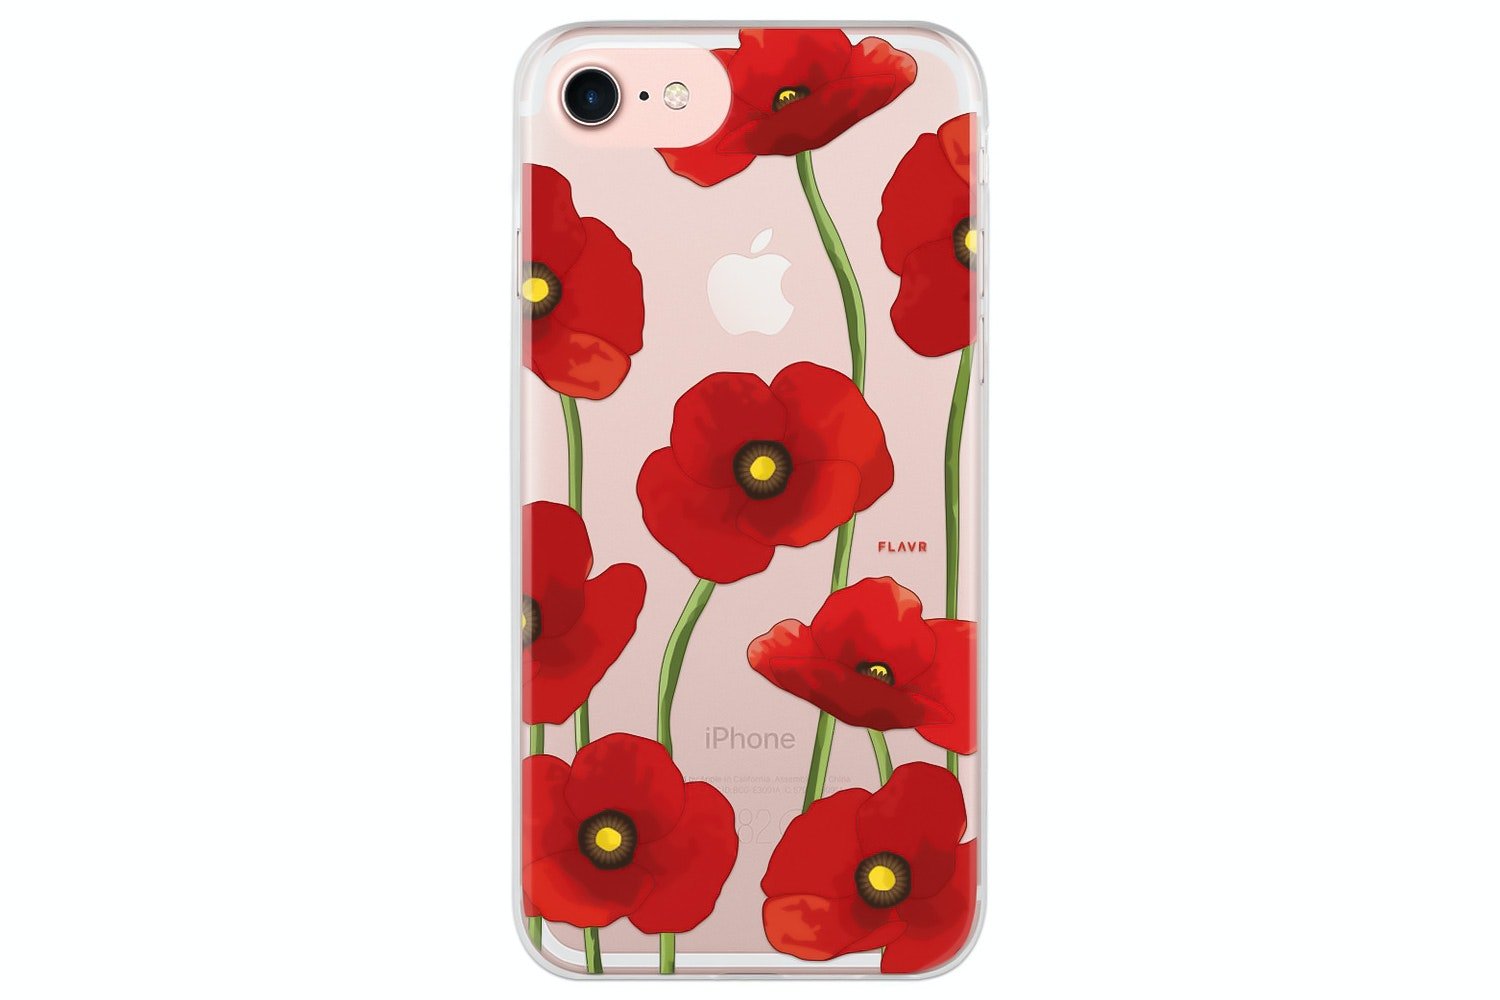 Flavr iPlate Poppy for iPhone 6/6s/7/8 | Multi Colour